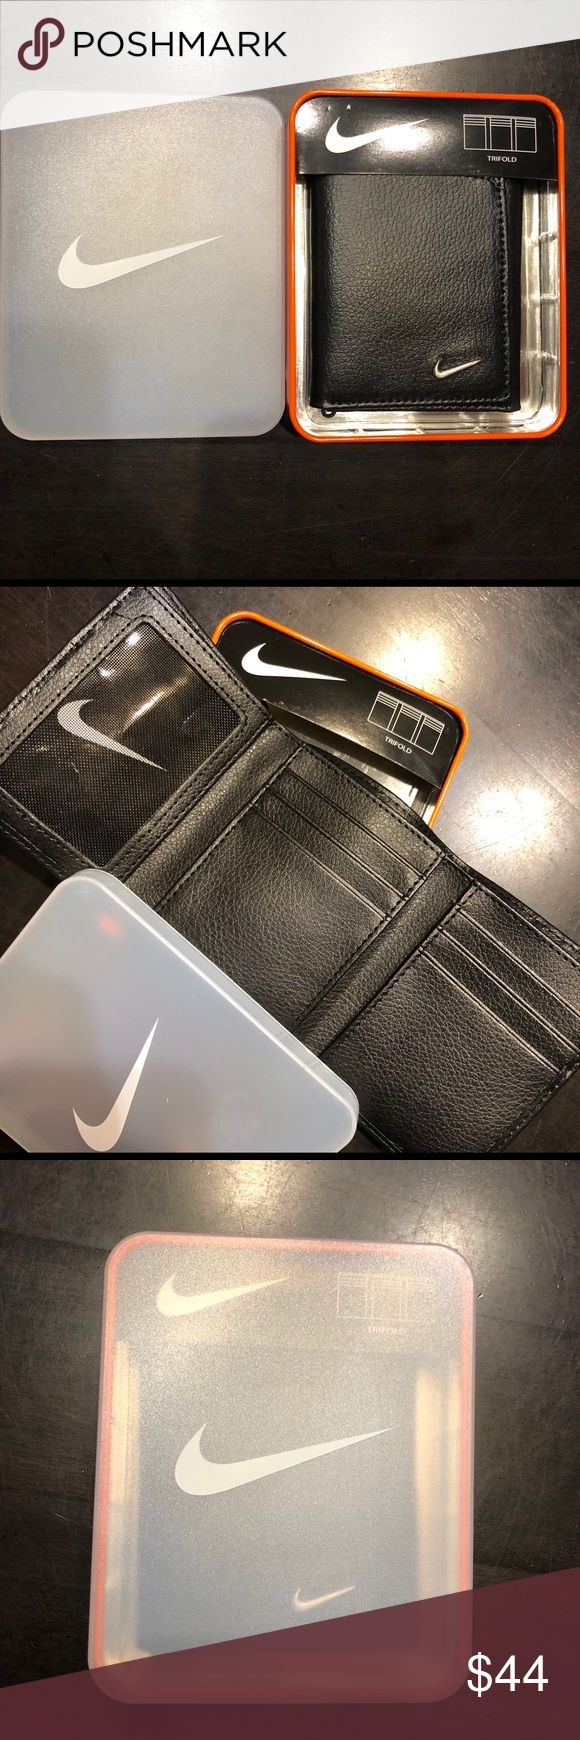 NEW Nike Tri Fold Wallet and Tin! NEW Nike Tri Fold Wallet and Tin! Nike Other